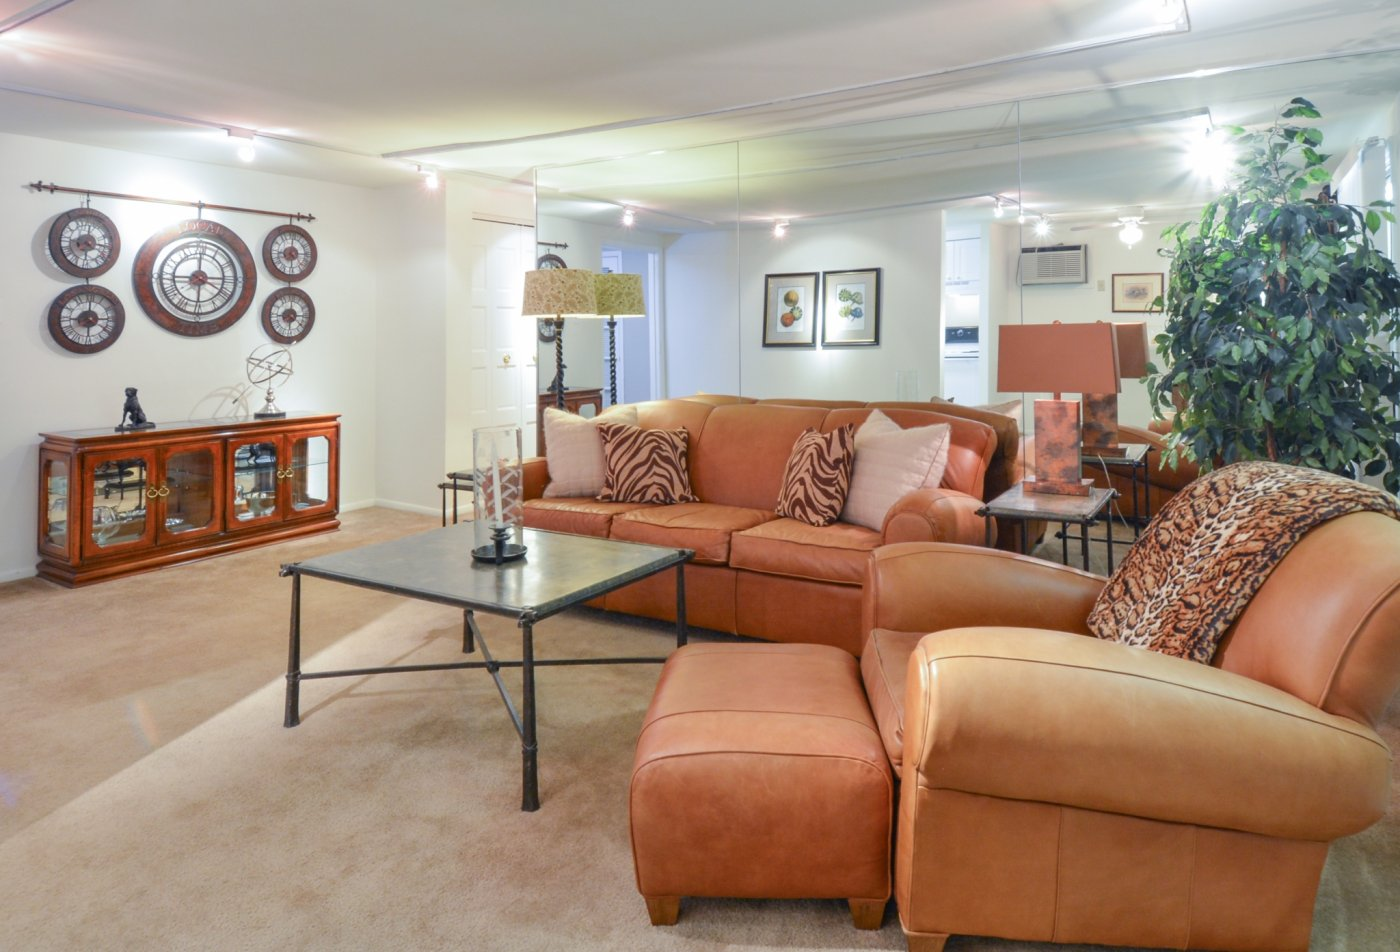 Elegant Living Room | Apartments for rent in Secane, PA | Bishop Hill Apartments